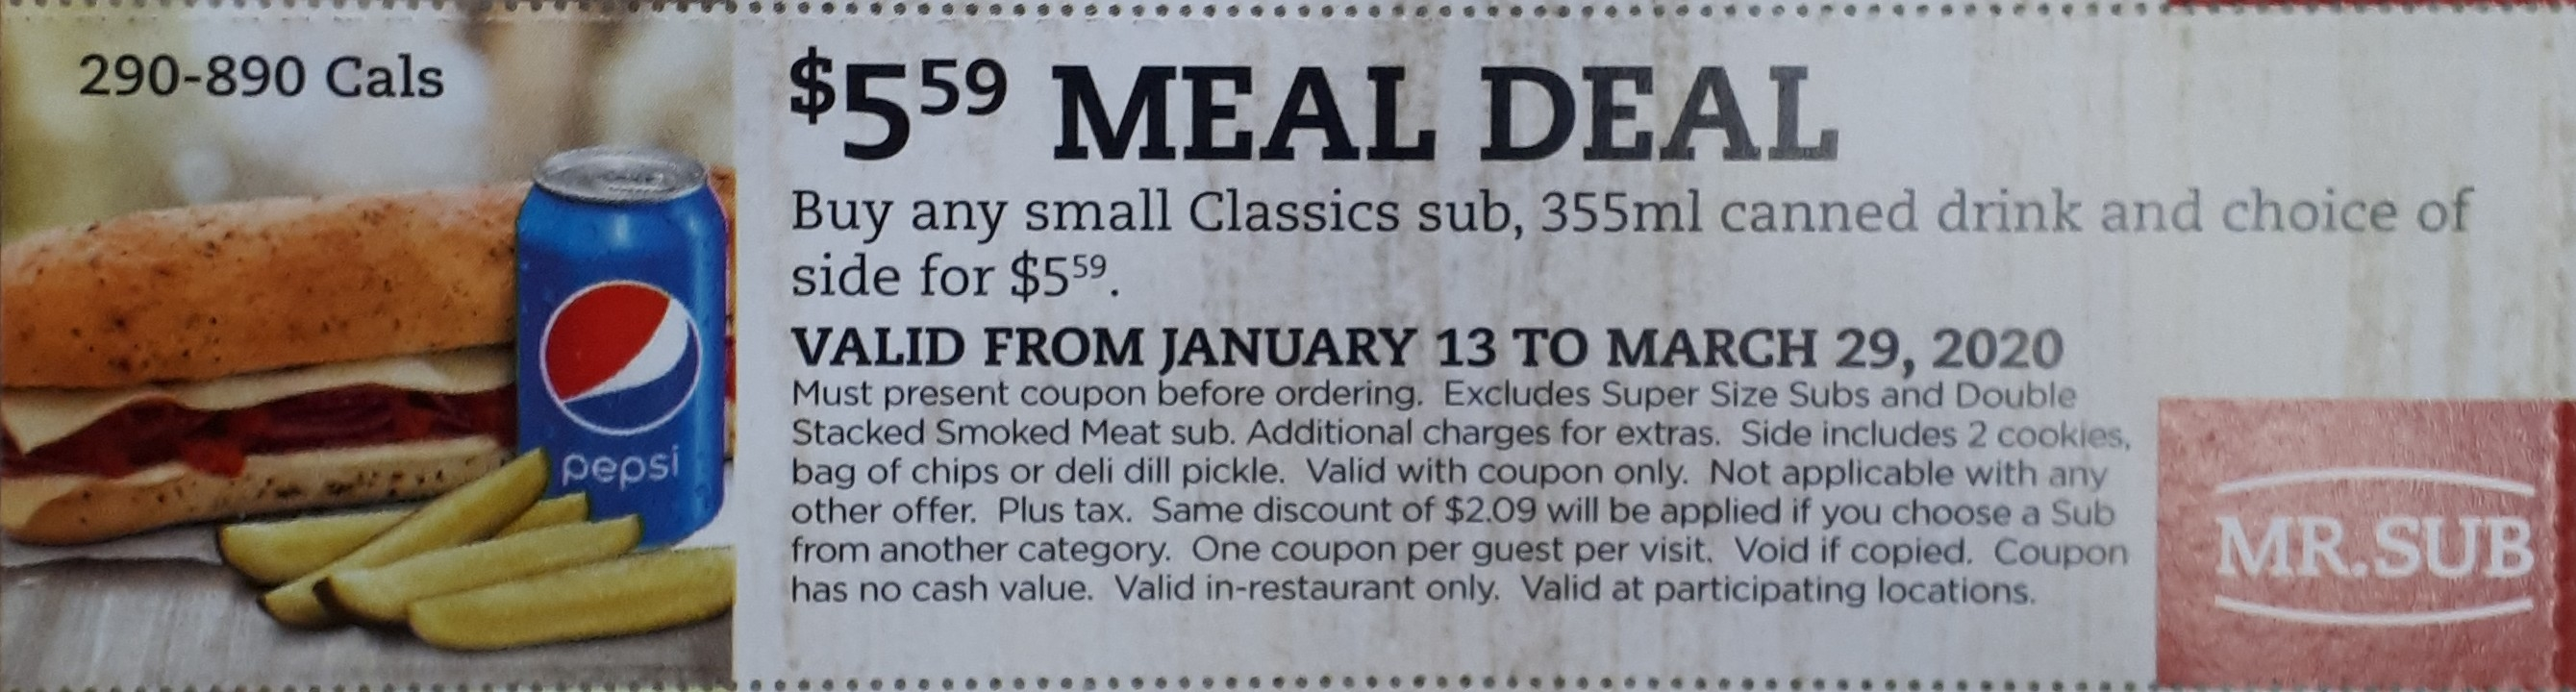 $5.59 Meal Deal